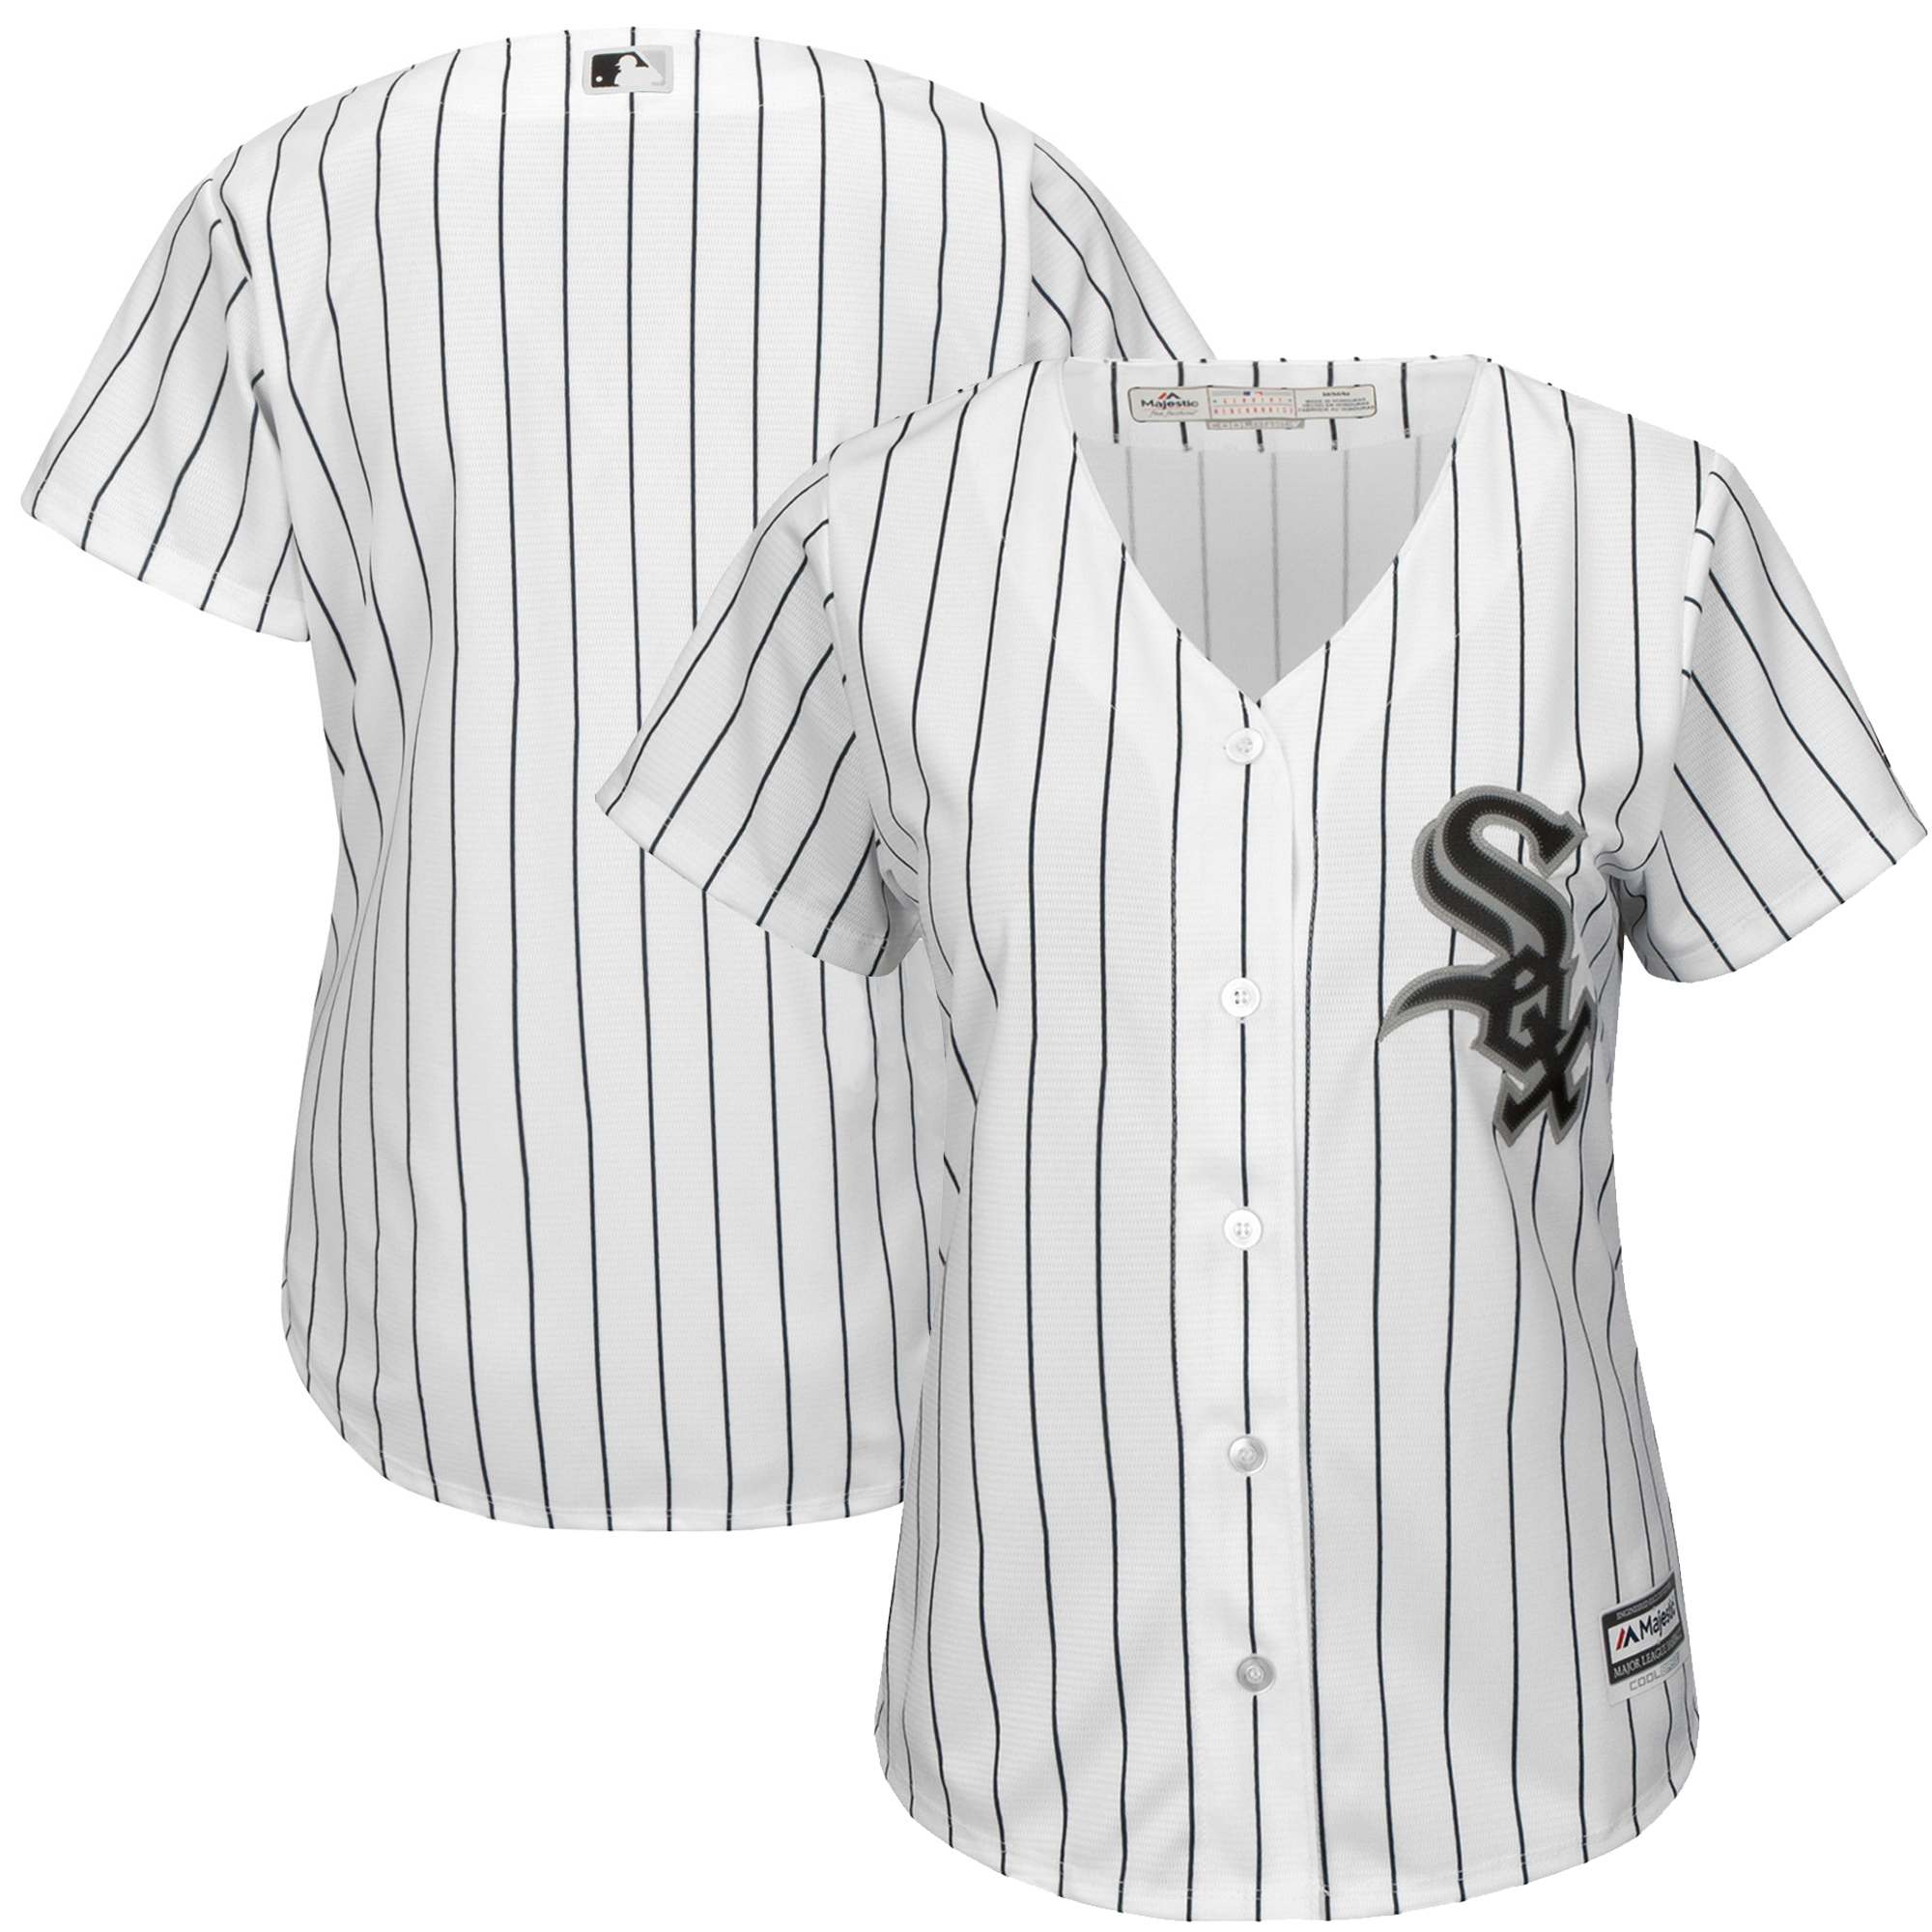 Chicago White Sox Majestic Women's Cool Base Jersey - White